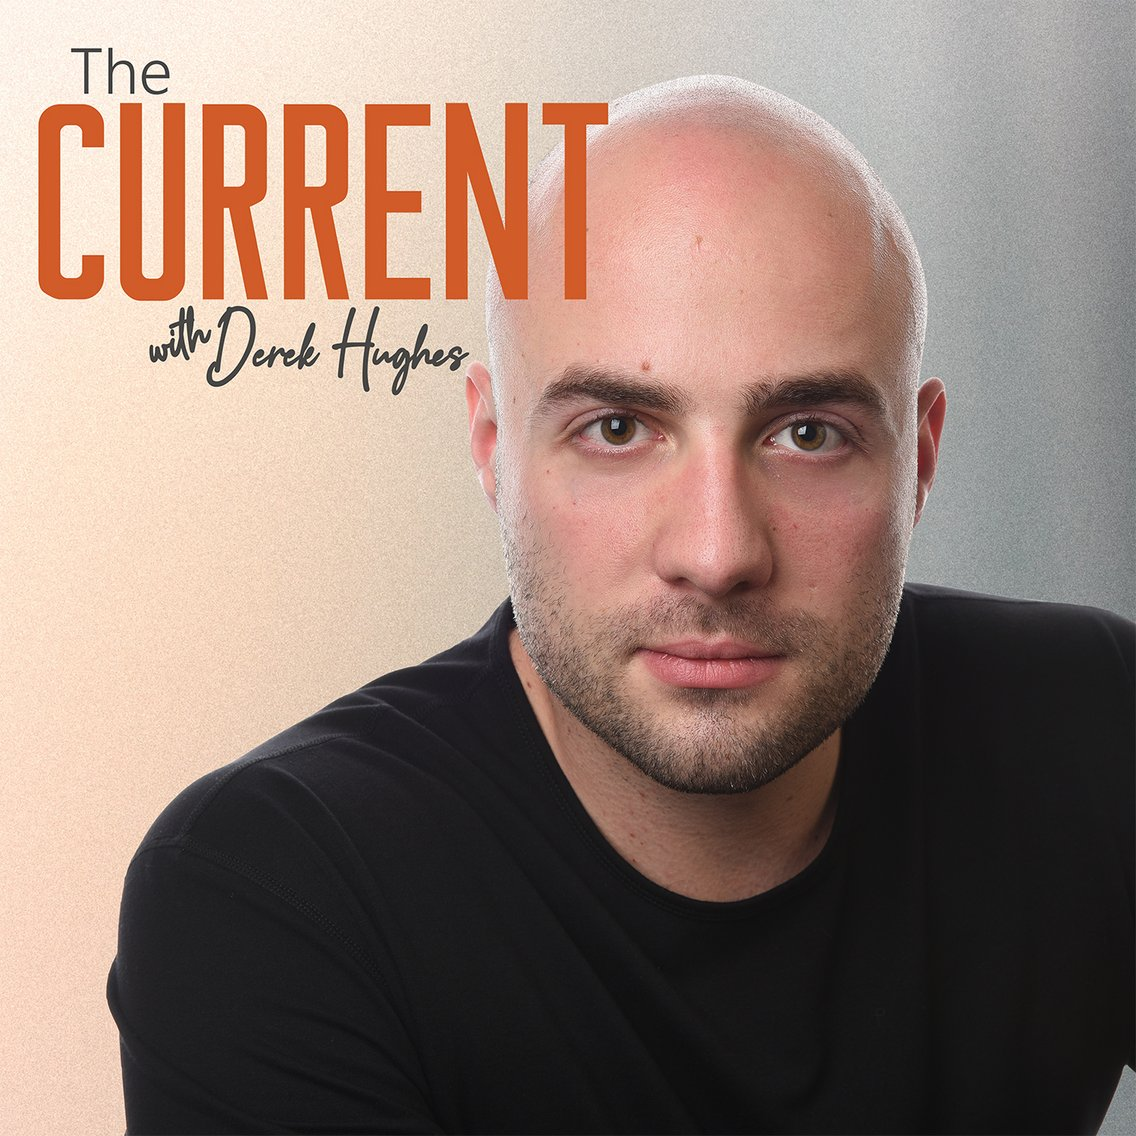 The Current with Derek Hughes - Cover Image